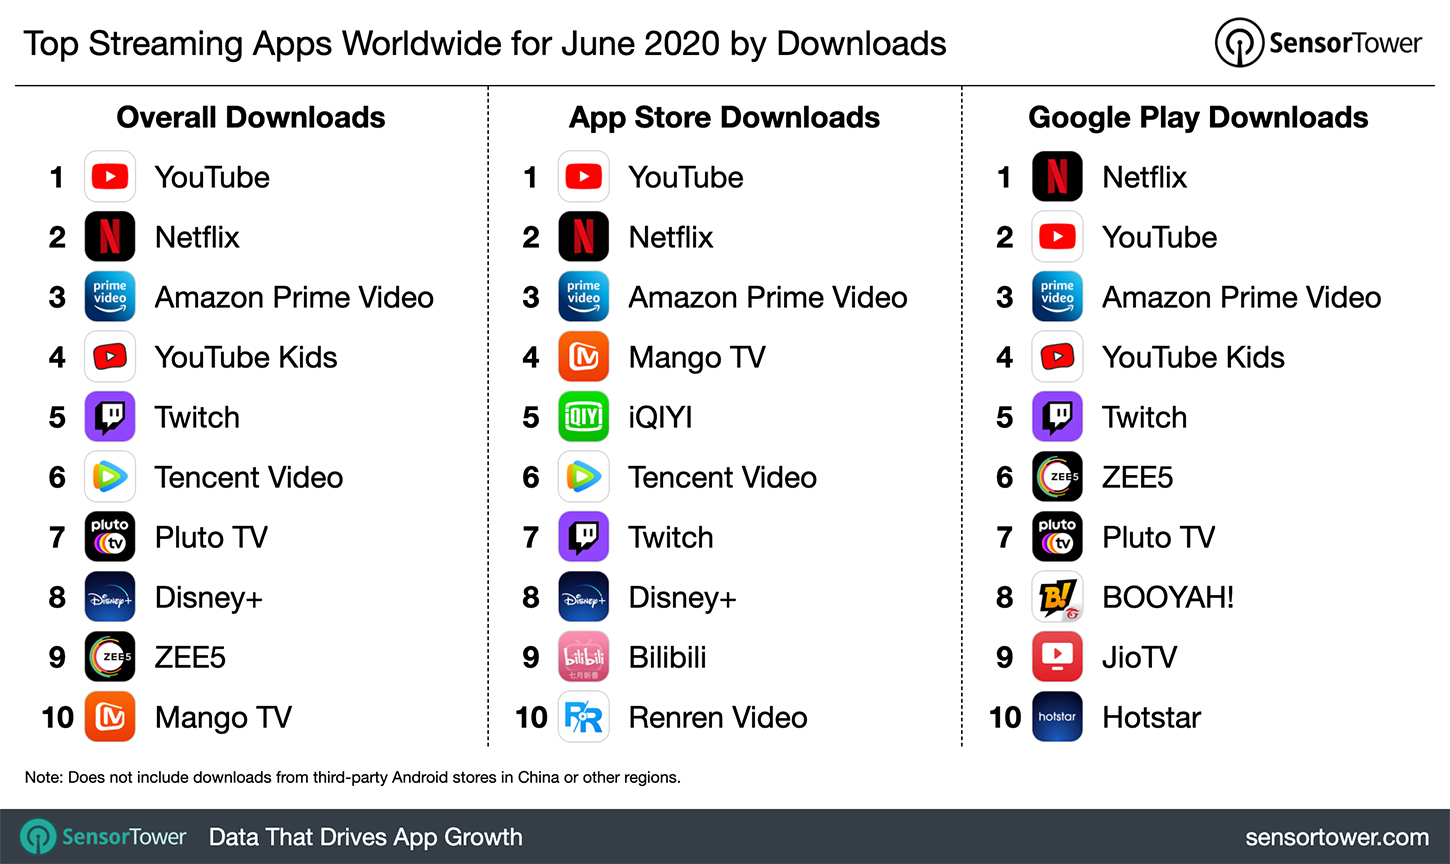 Top Streaming Apps Worldwide for June 2020 by Downloads